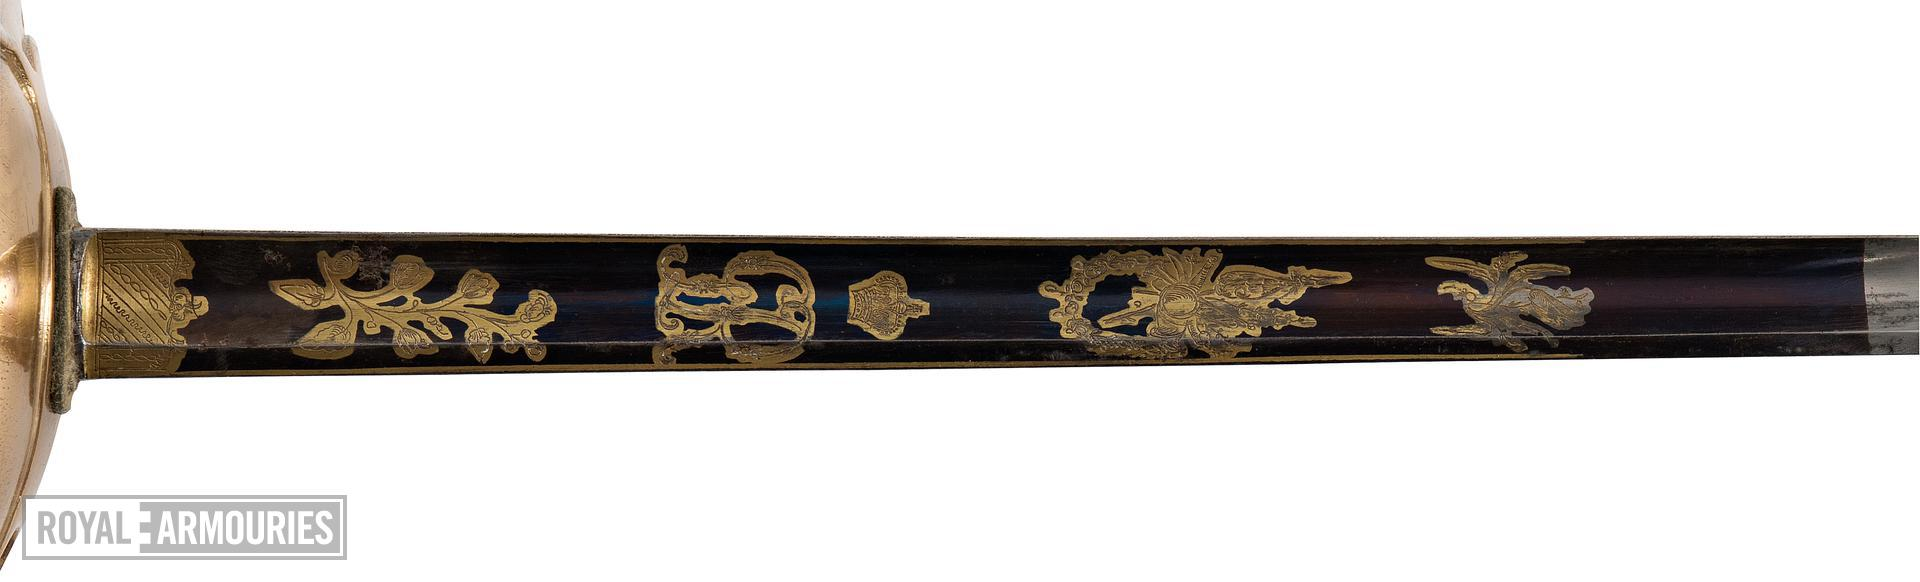 Sword and scabbard Sword of Duke of Wellington (A) and scabbard (B)